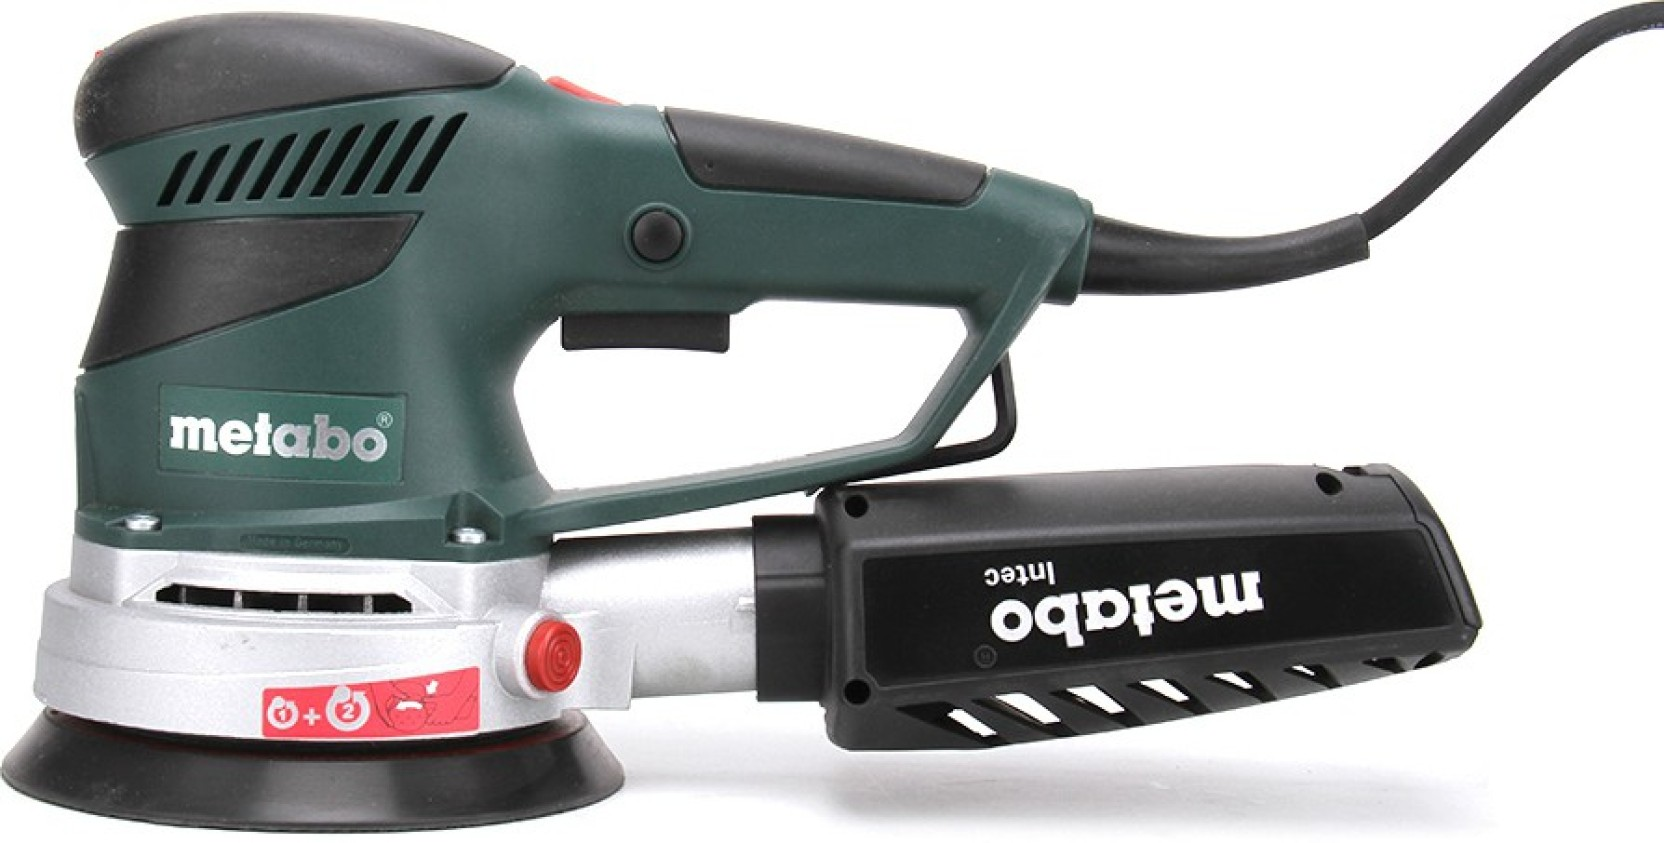 cumi metabo sxe 450 turbotec 5.9 inch disc sander price in india